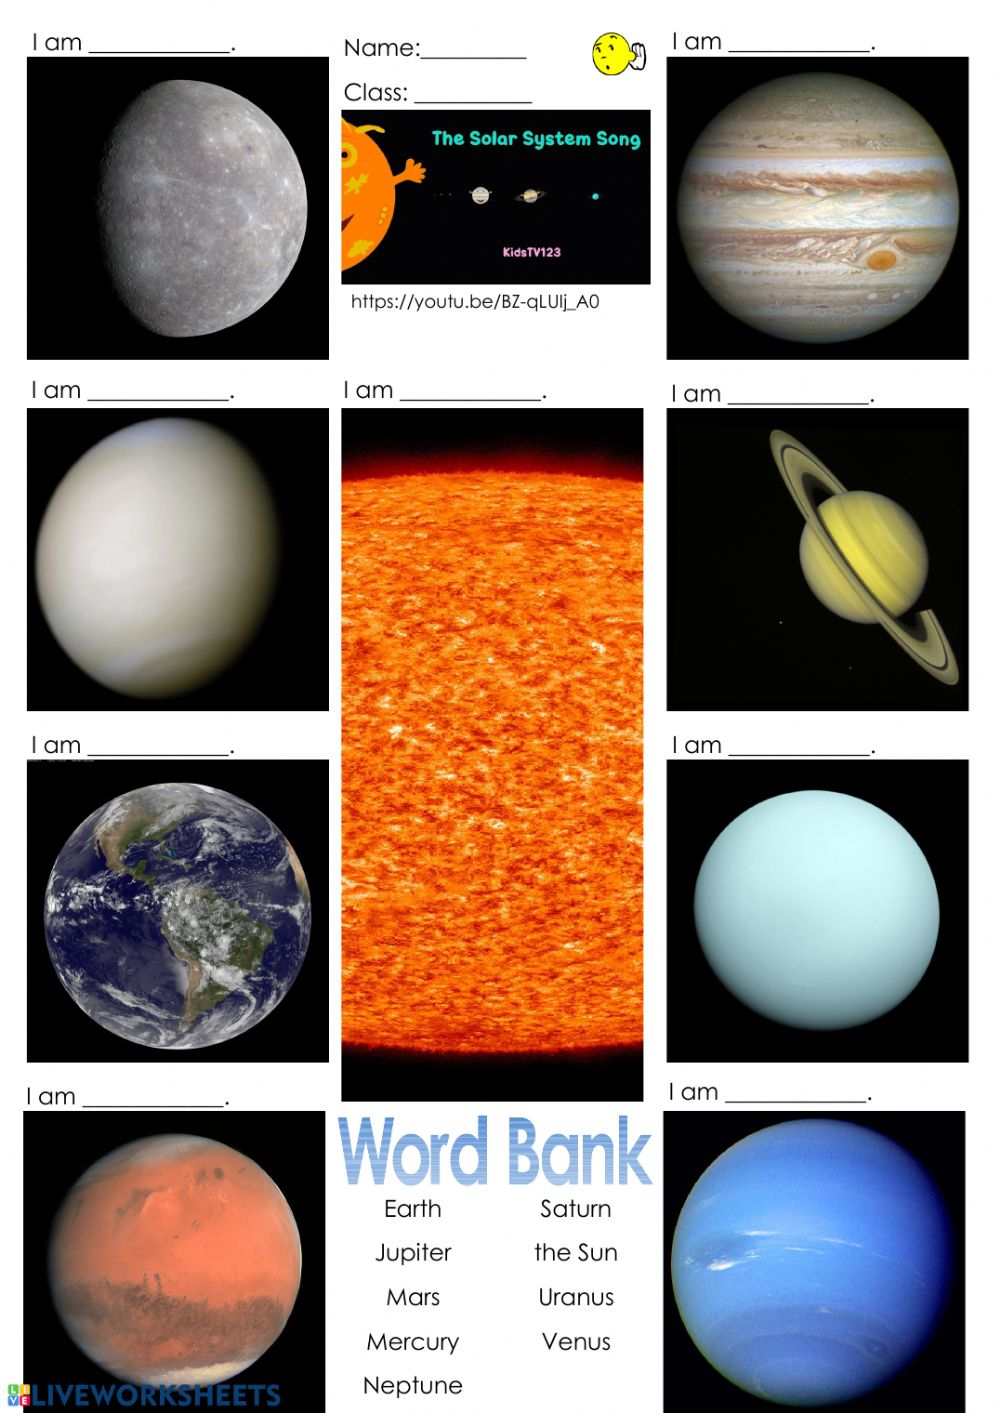 medium resolution of The Solar System Song worksheet